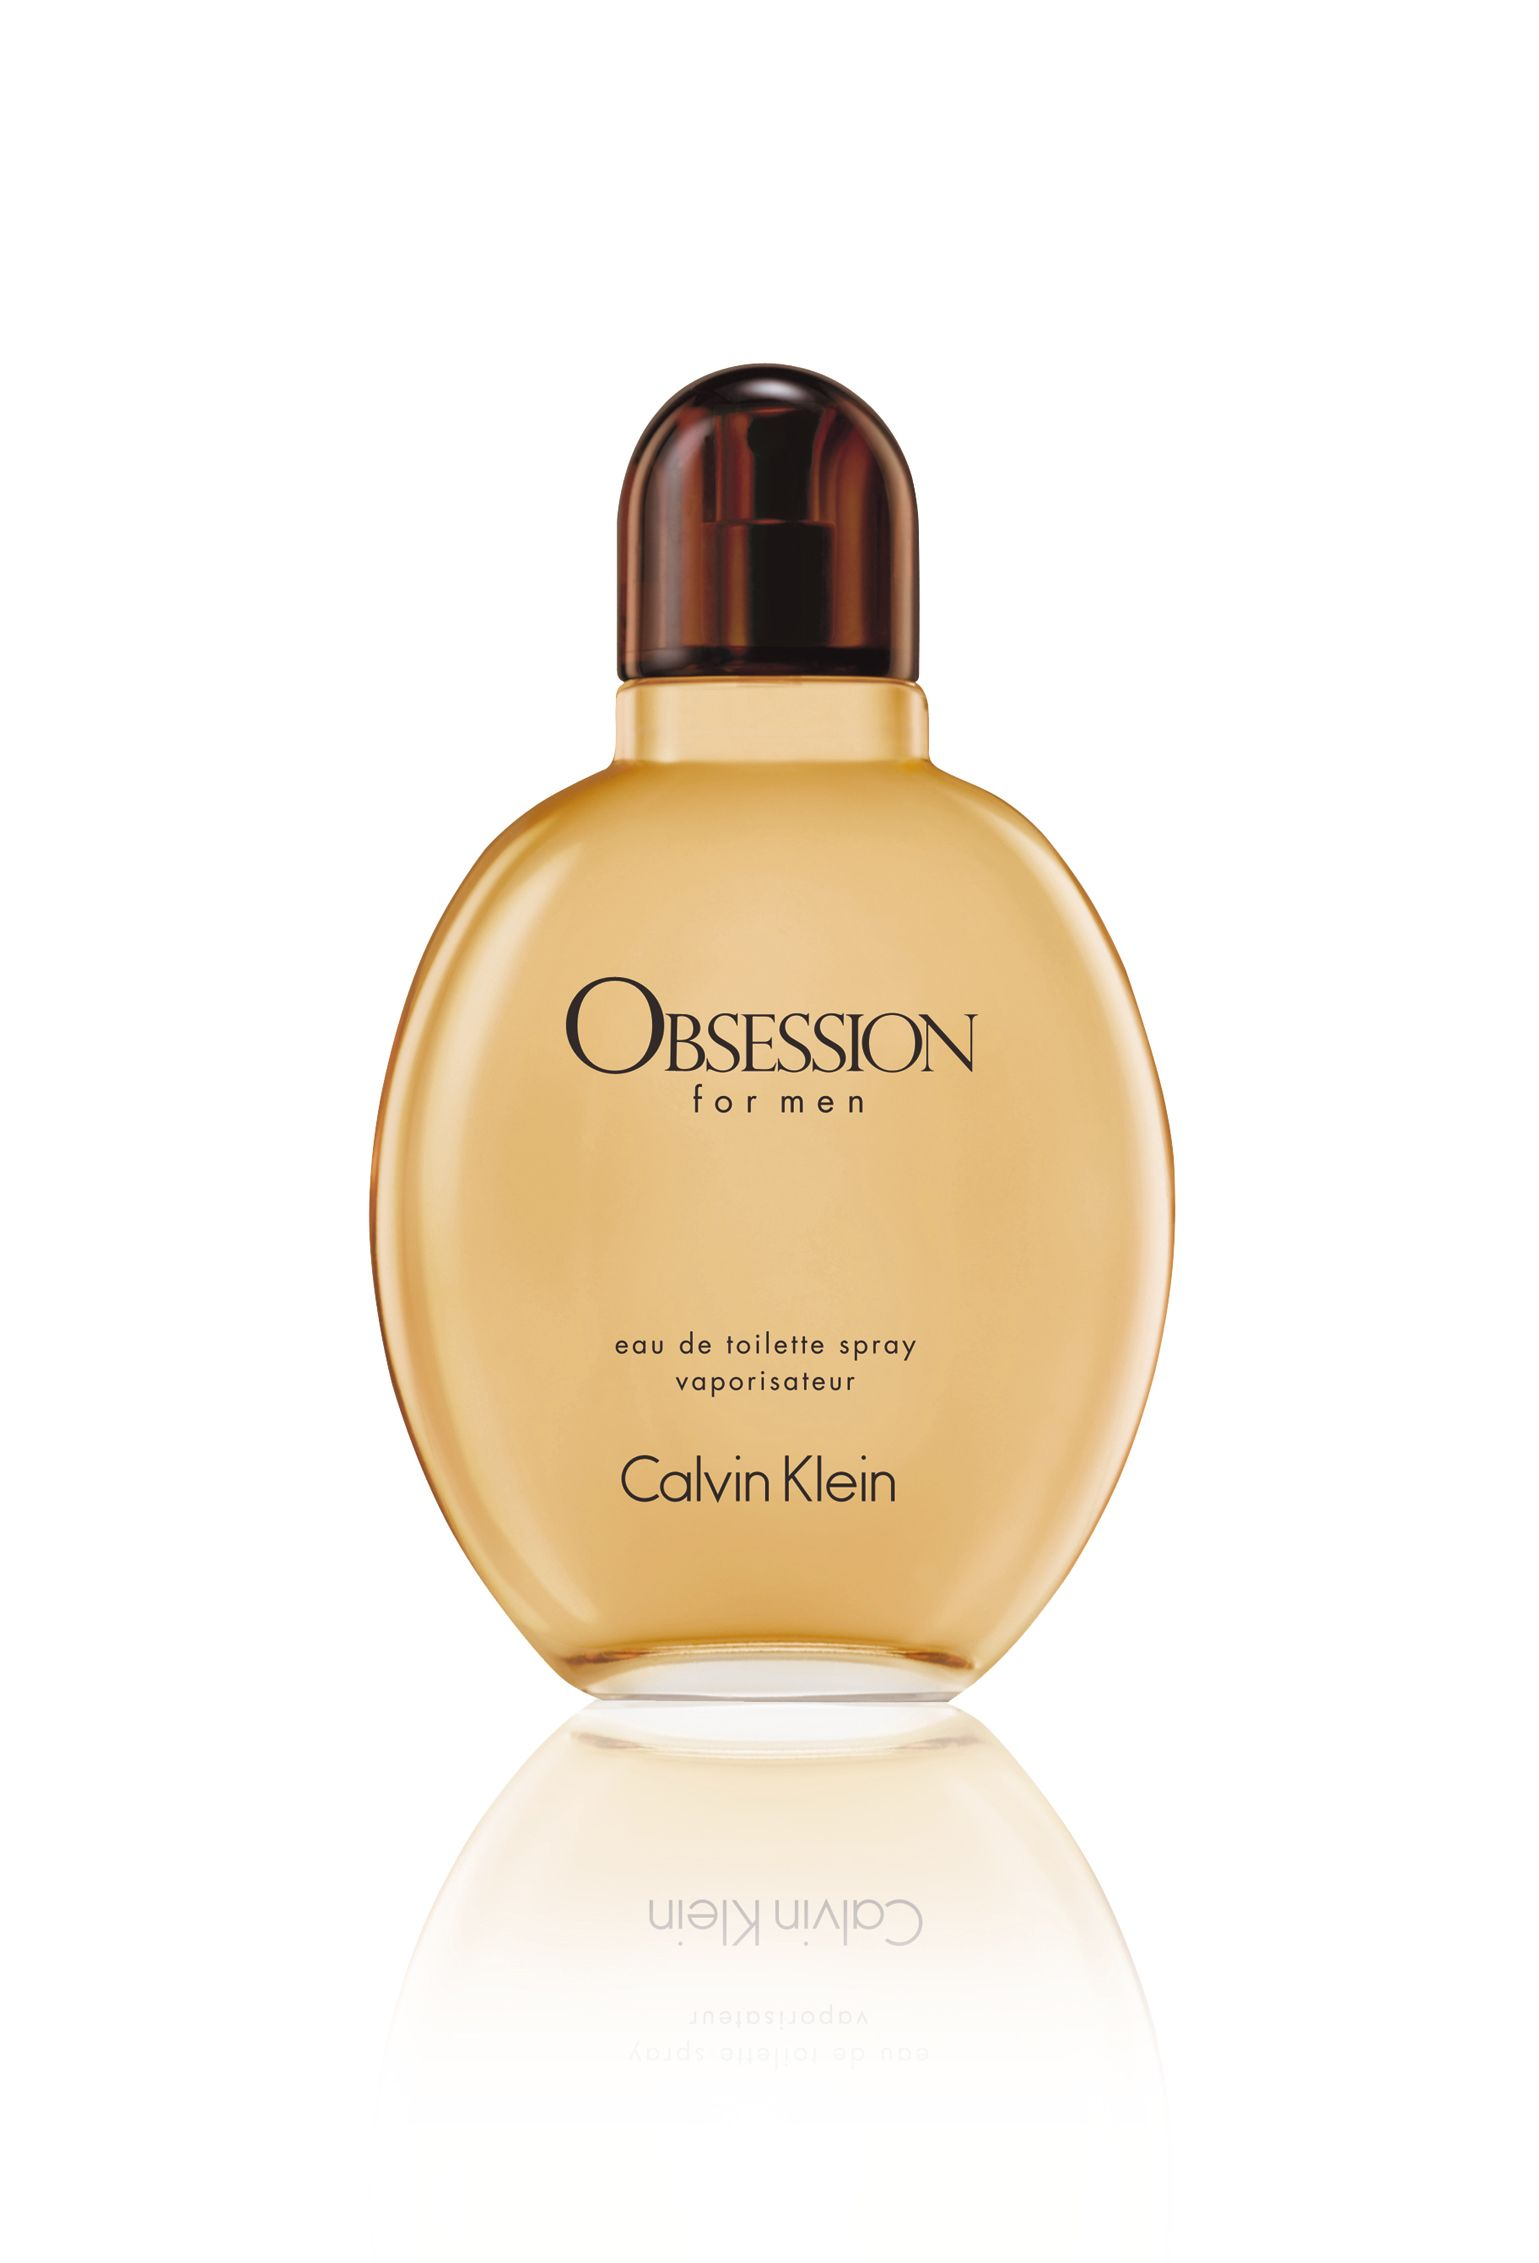 Obsession Eau De Toilette Spray for Men